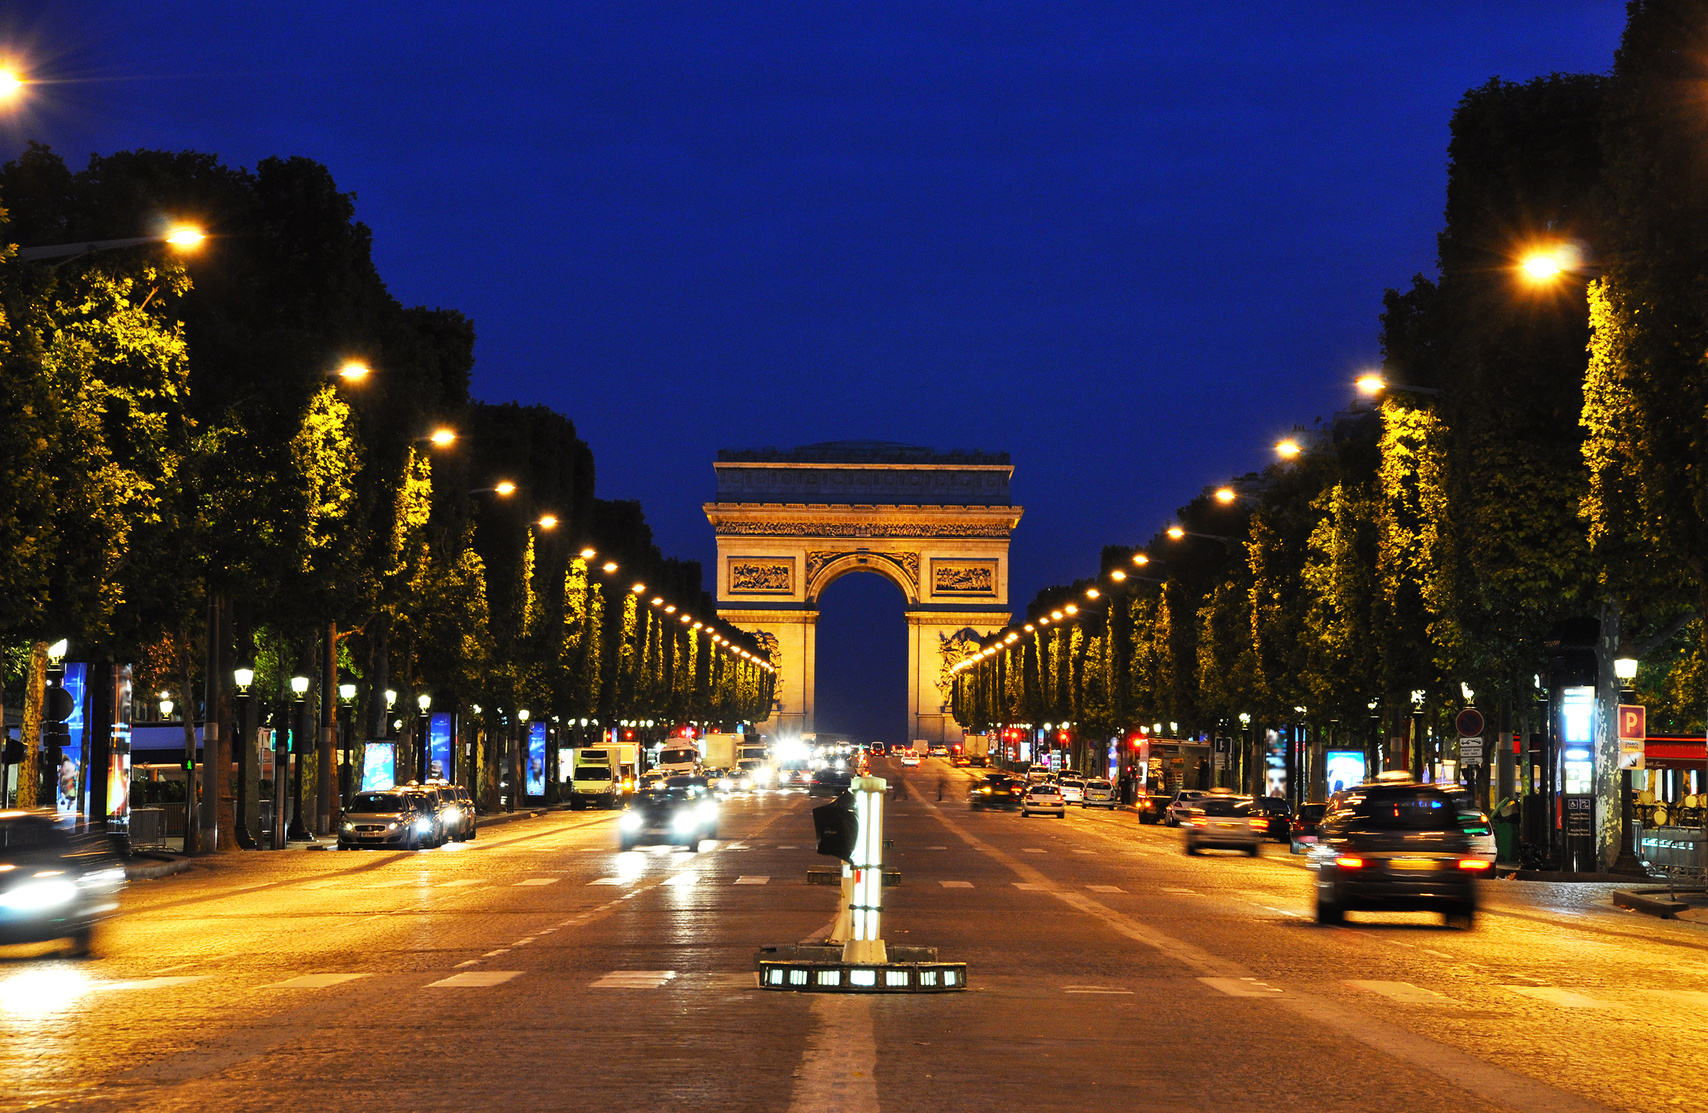 The Champs-Elysées at night, Paris, France